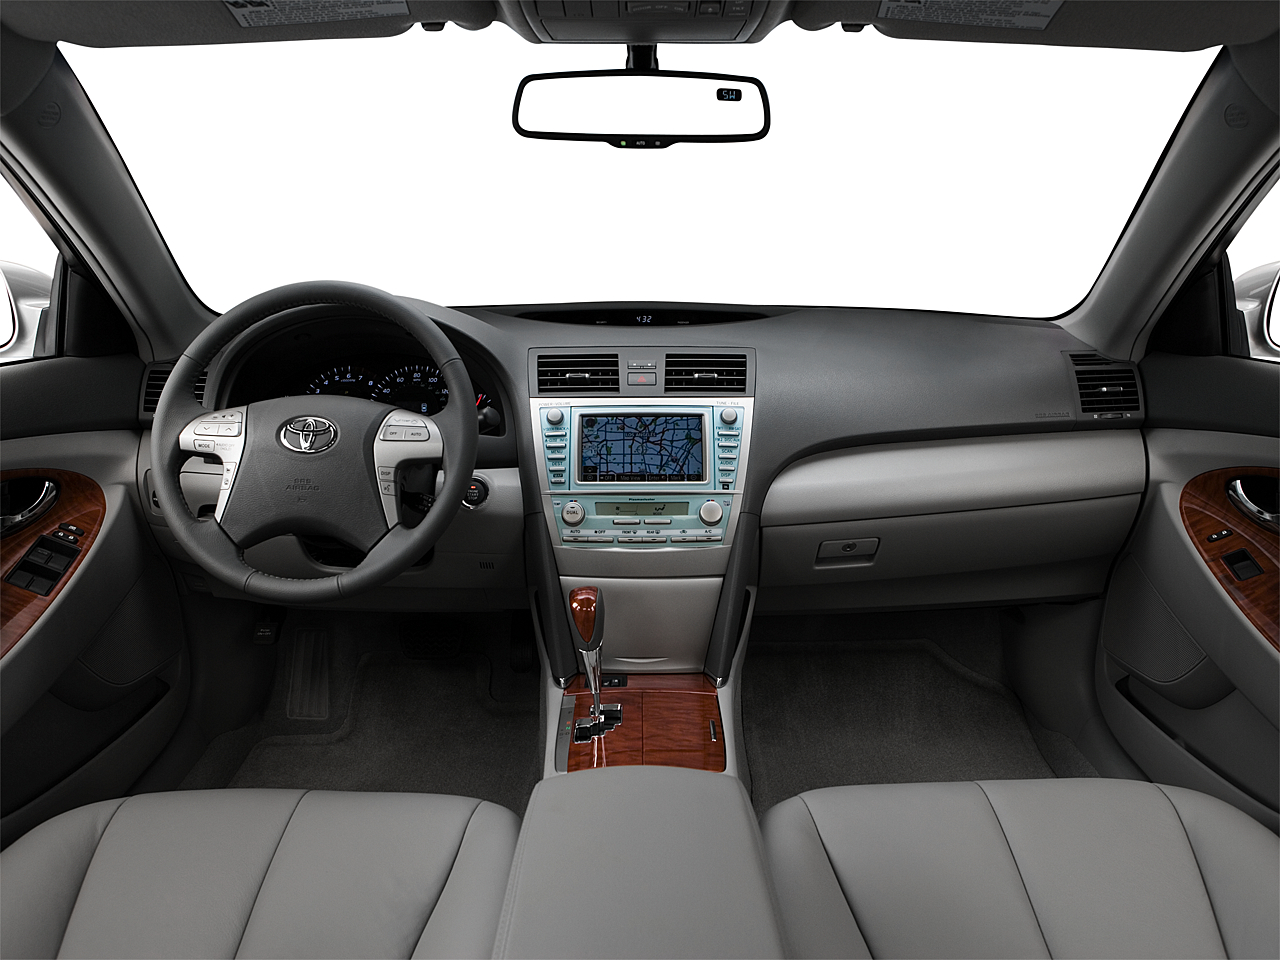 2008 Toyota Camry XLE, Centered Wide Dash Shot